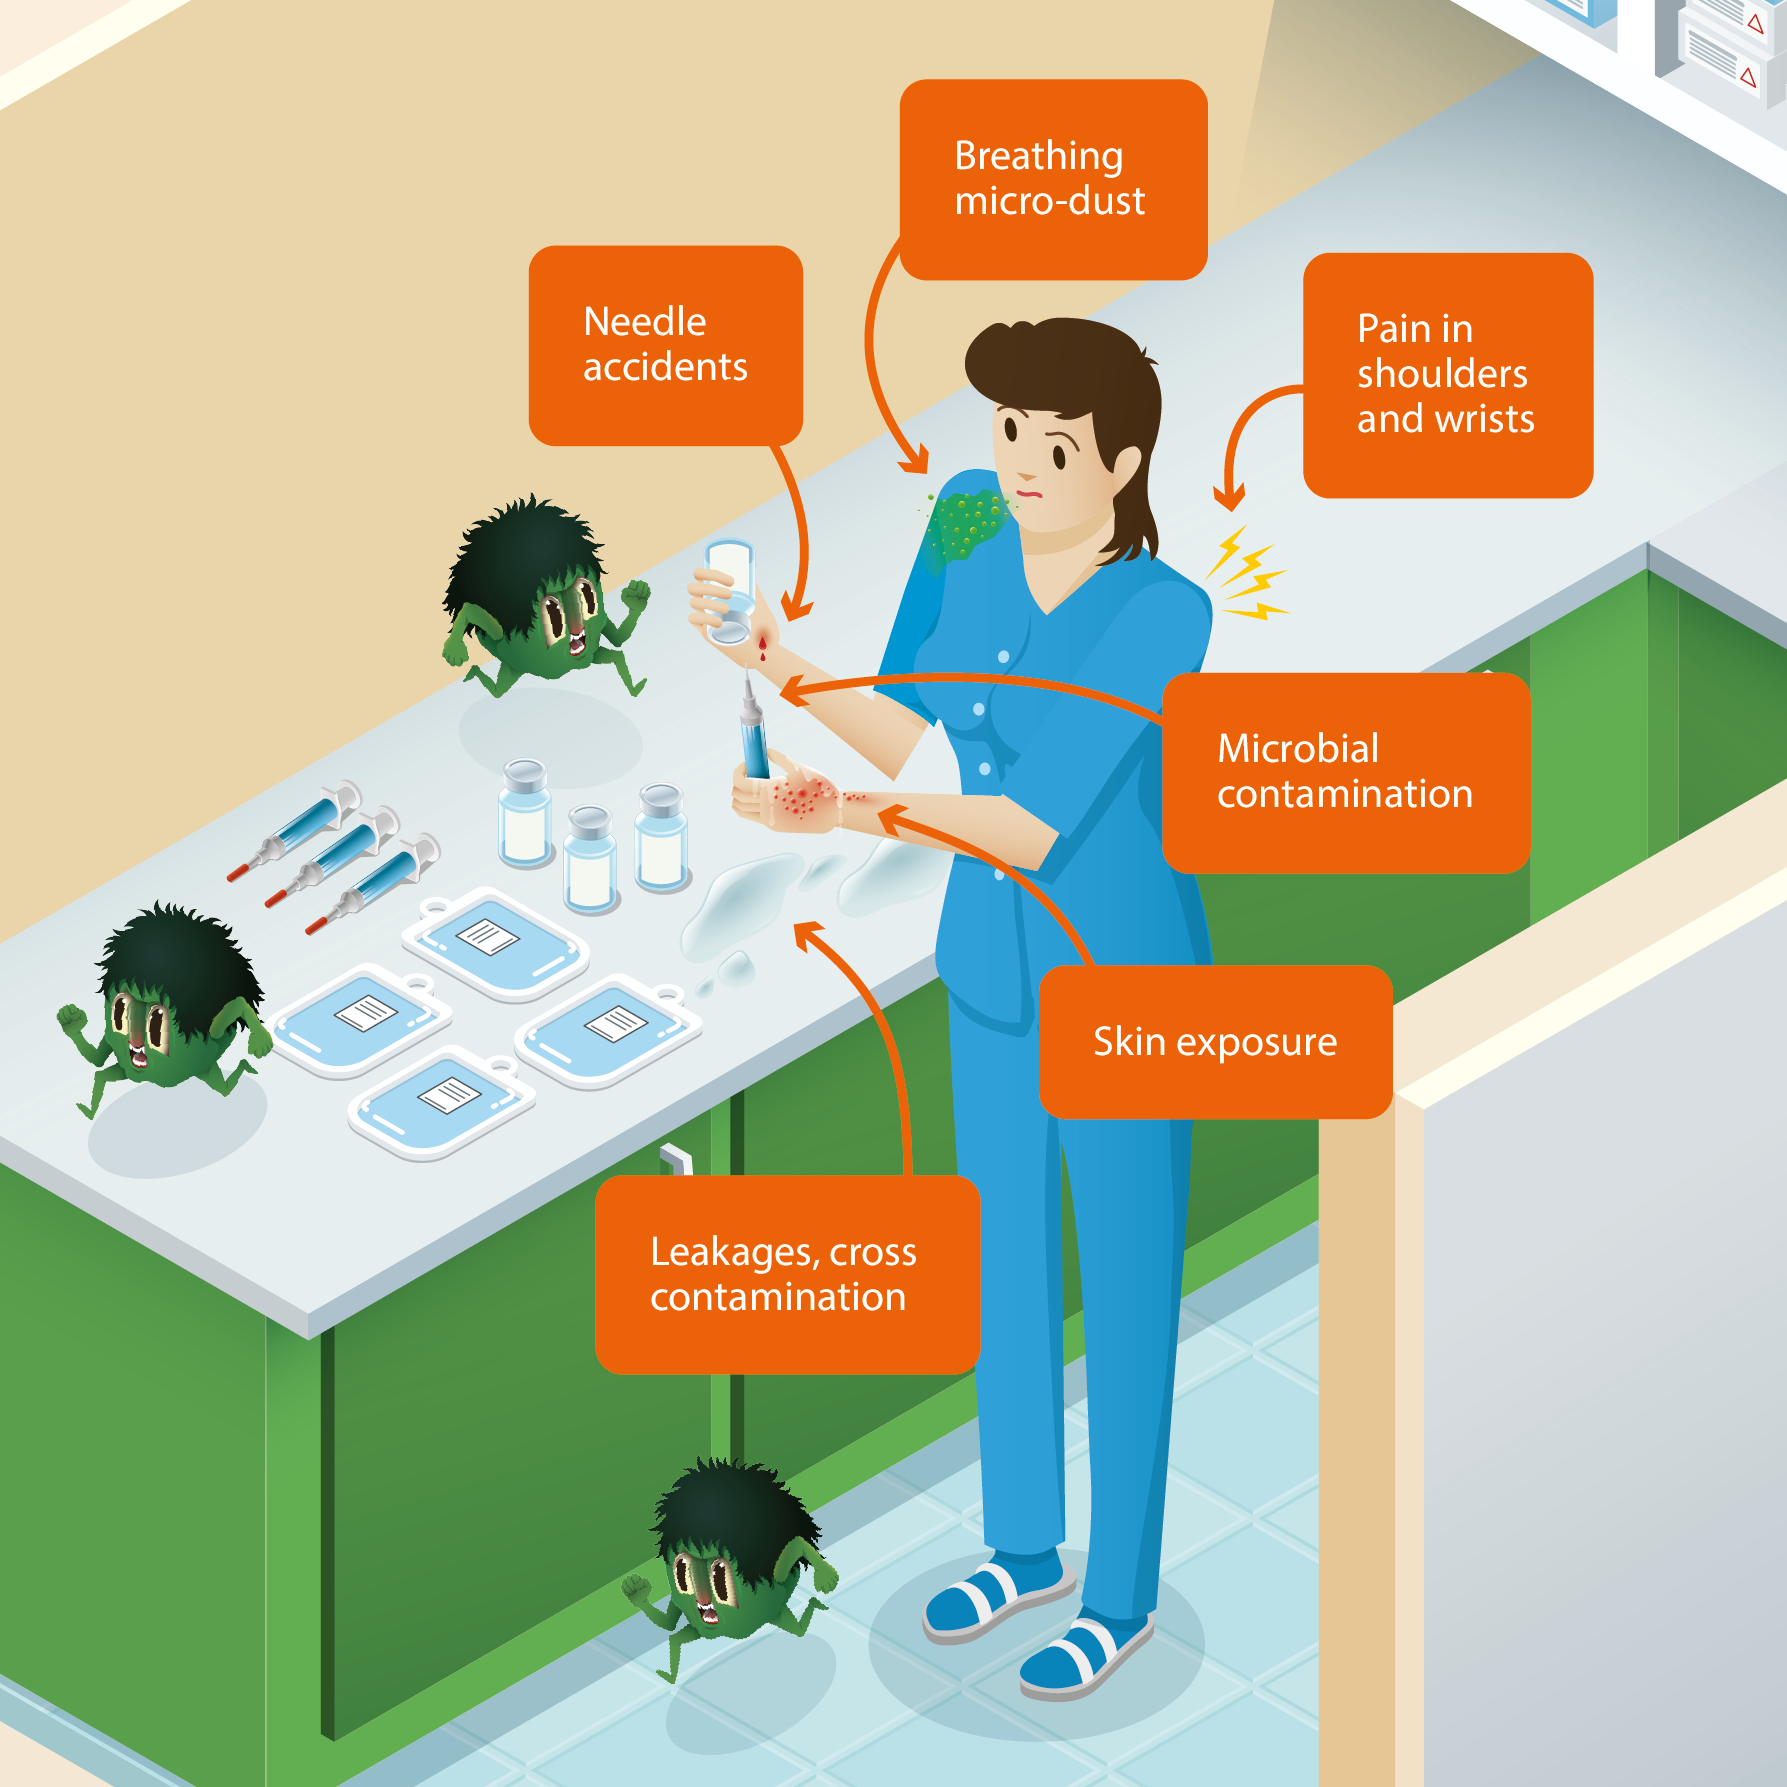 Research results regarding pharmacy automation in a university hospital: Highlighting safety, efficiency and rationality